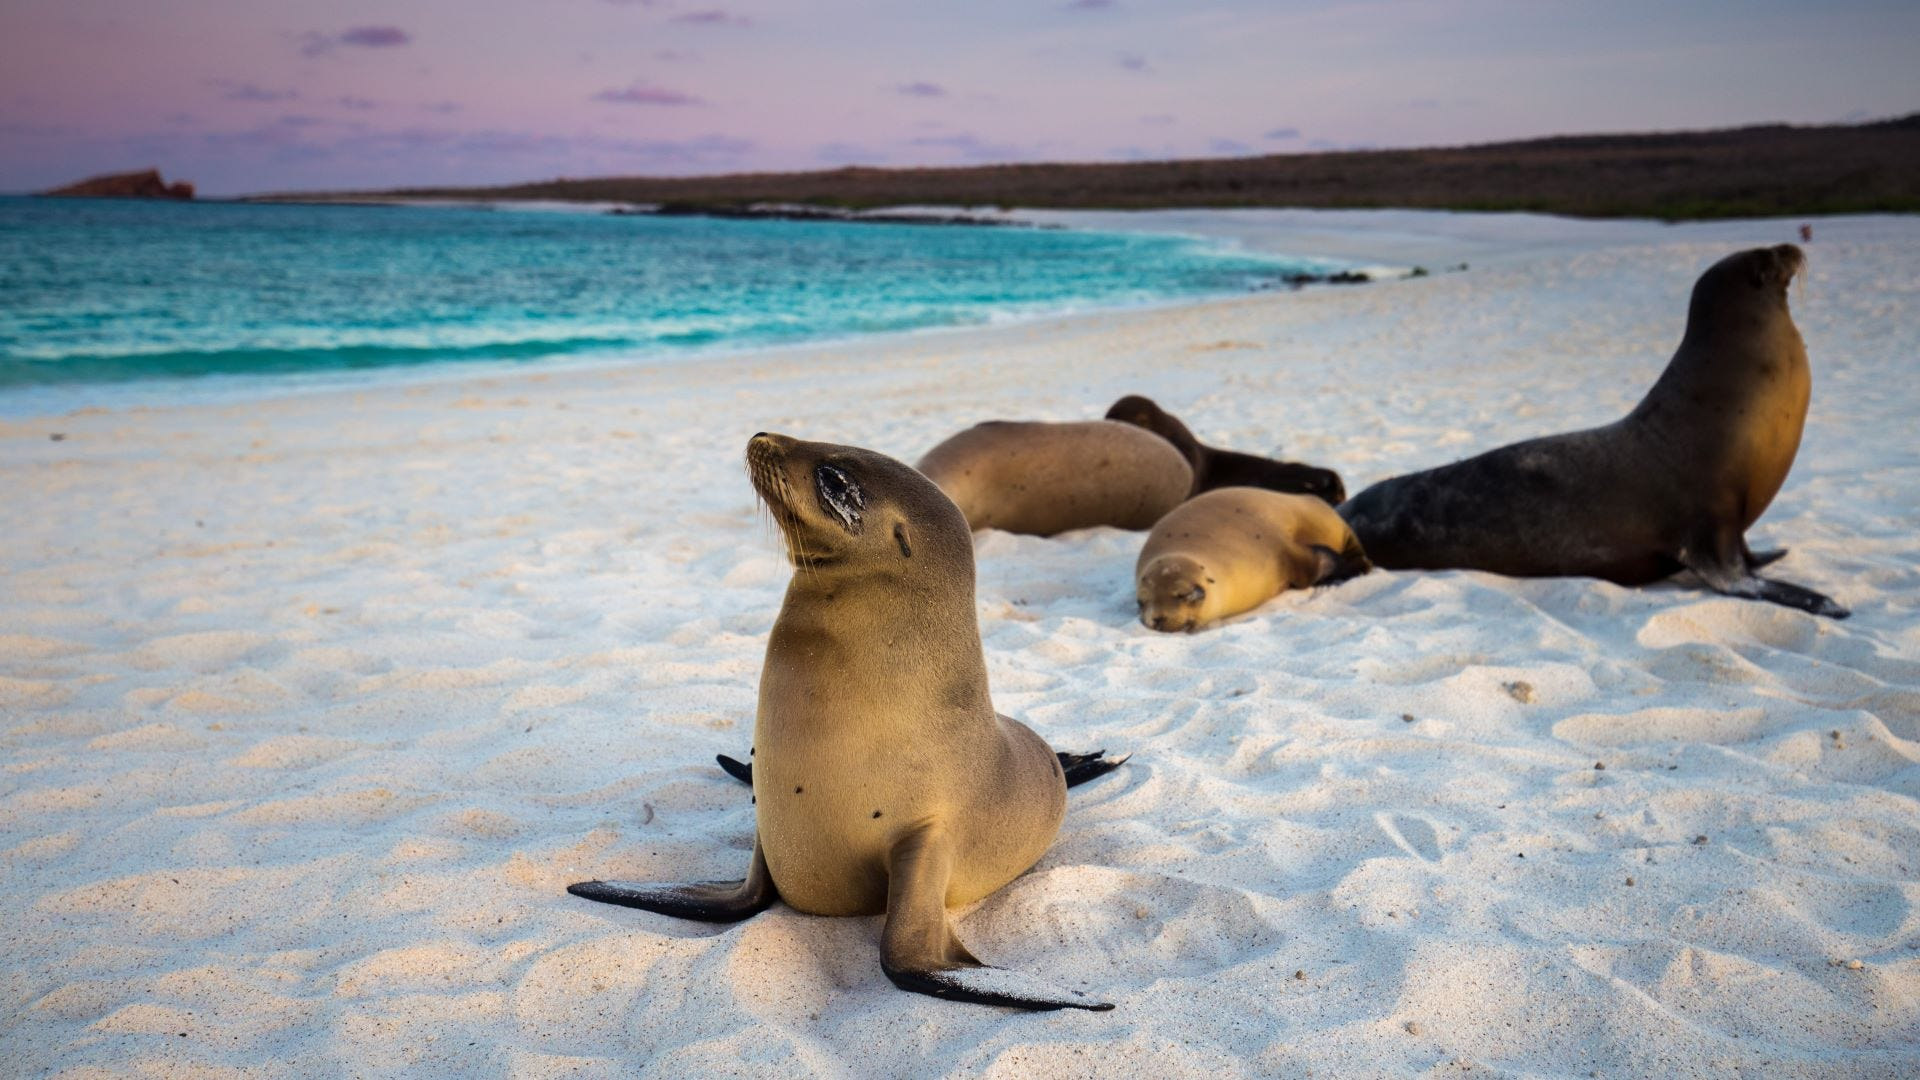 Five sea lions on the beach.